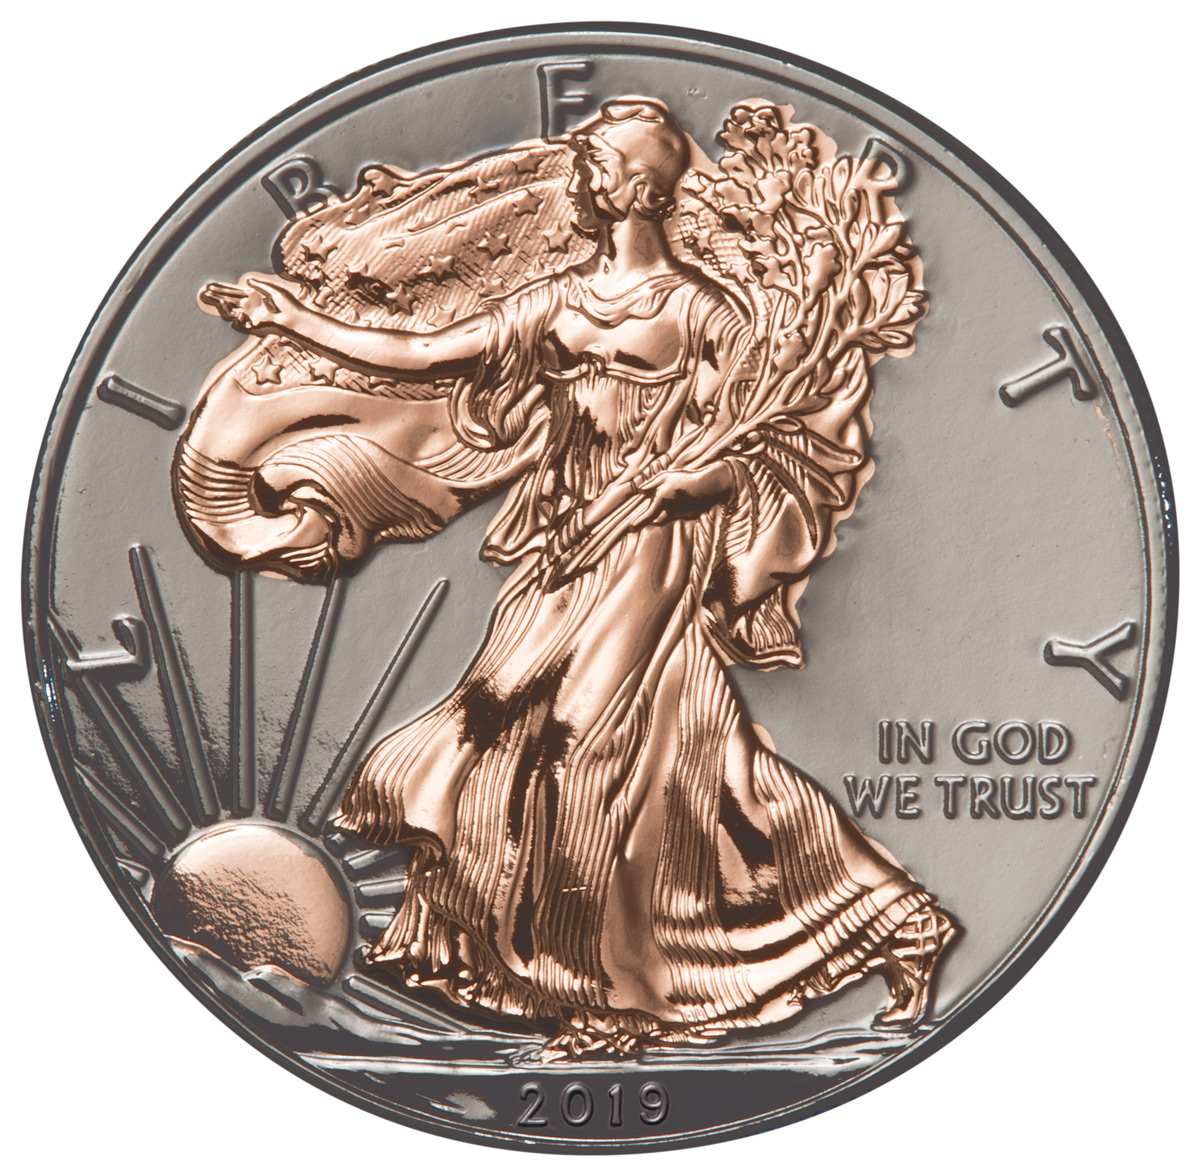 2019 1 oz Silver American Eagle $1 Coin Black Ruthenium and Rose Gold GEM BU